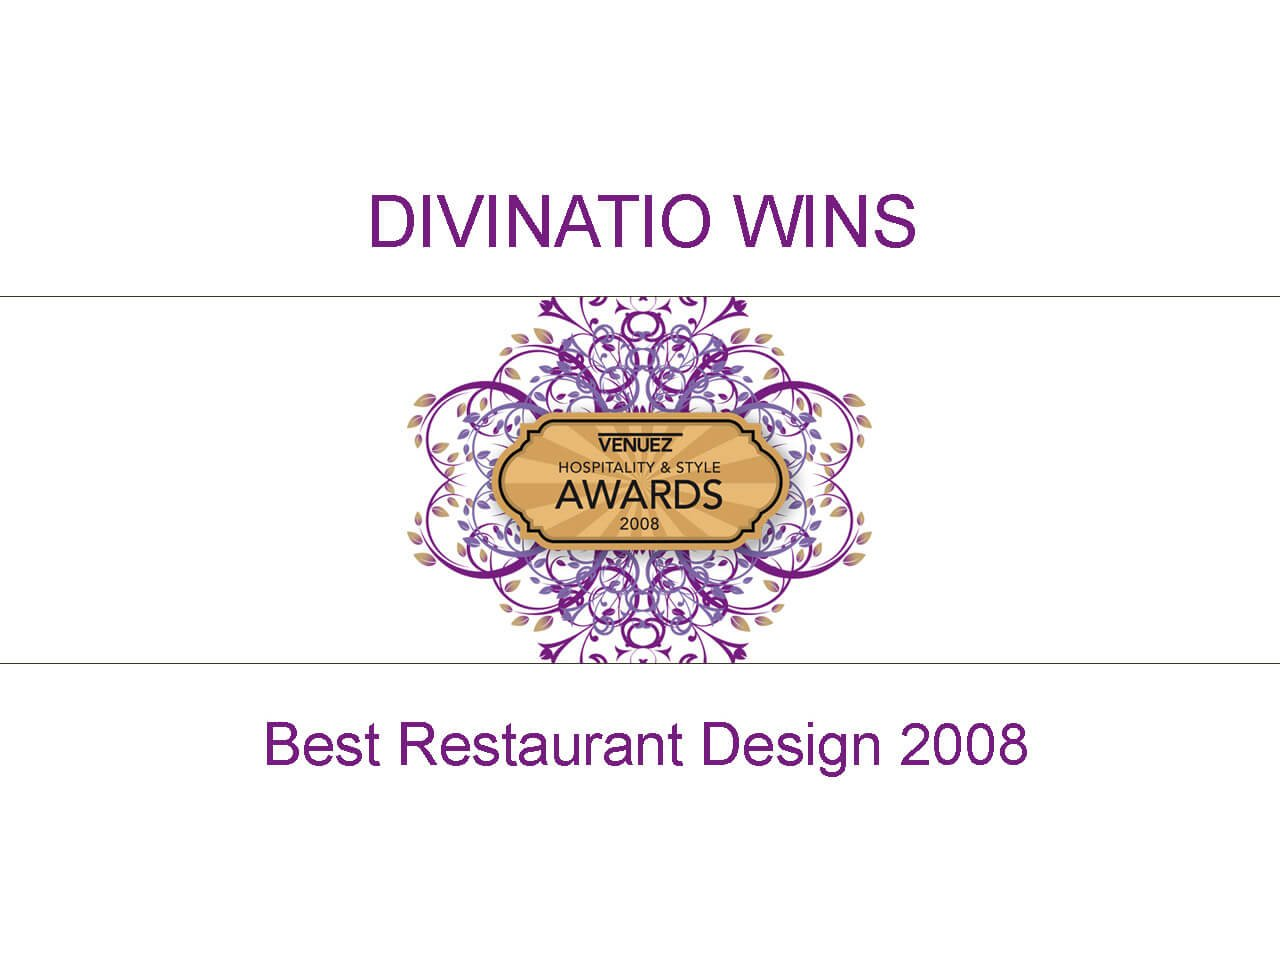 Venuez Best Restaurant Design 2008